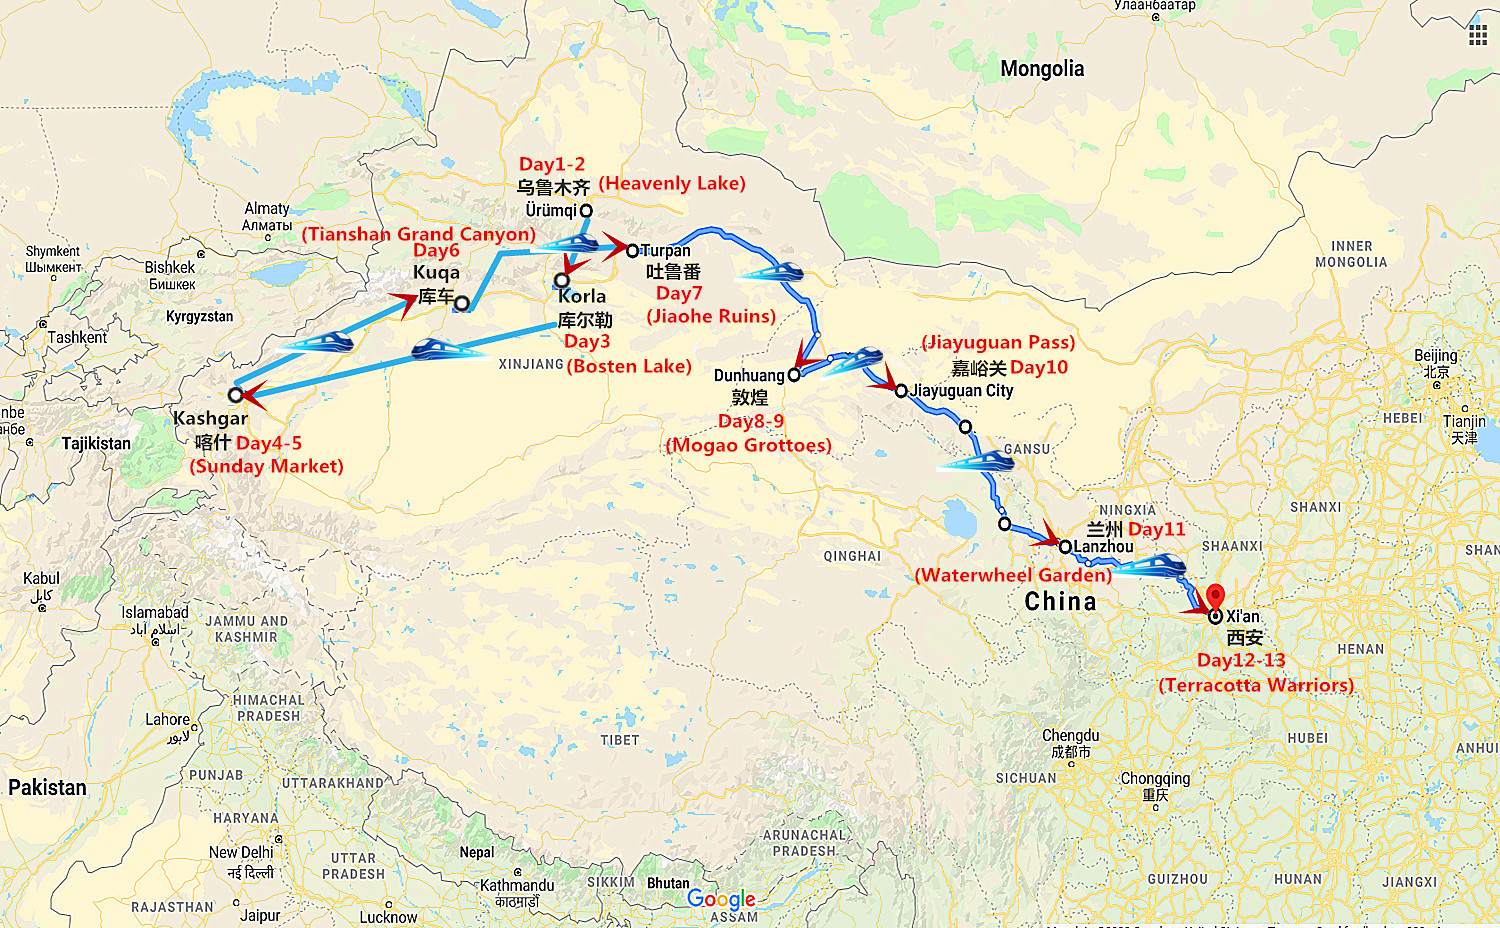 13 Days Silk Road Oriental Express from Urumqi to Xi'an Travel Map